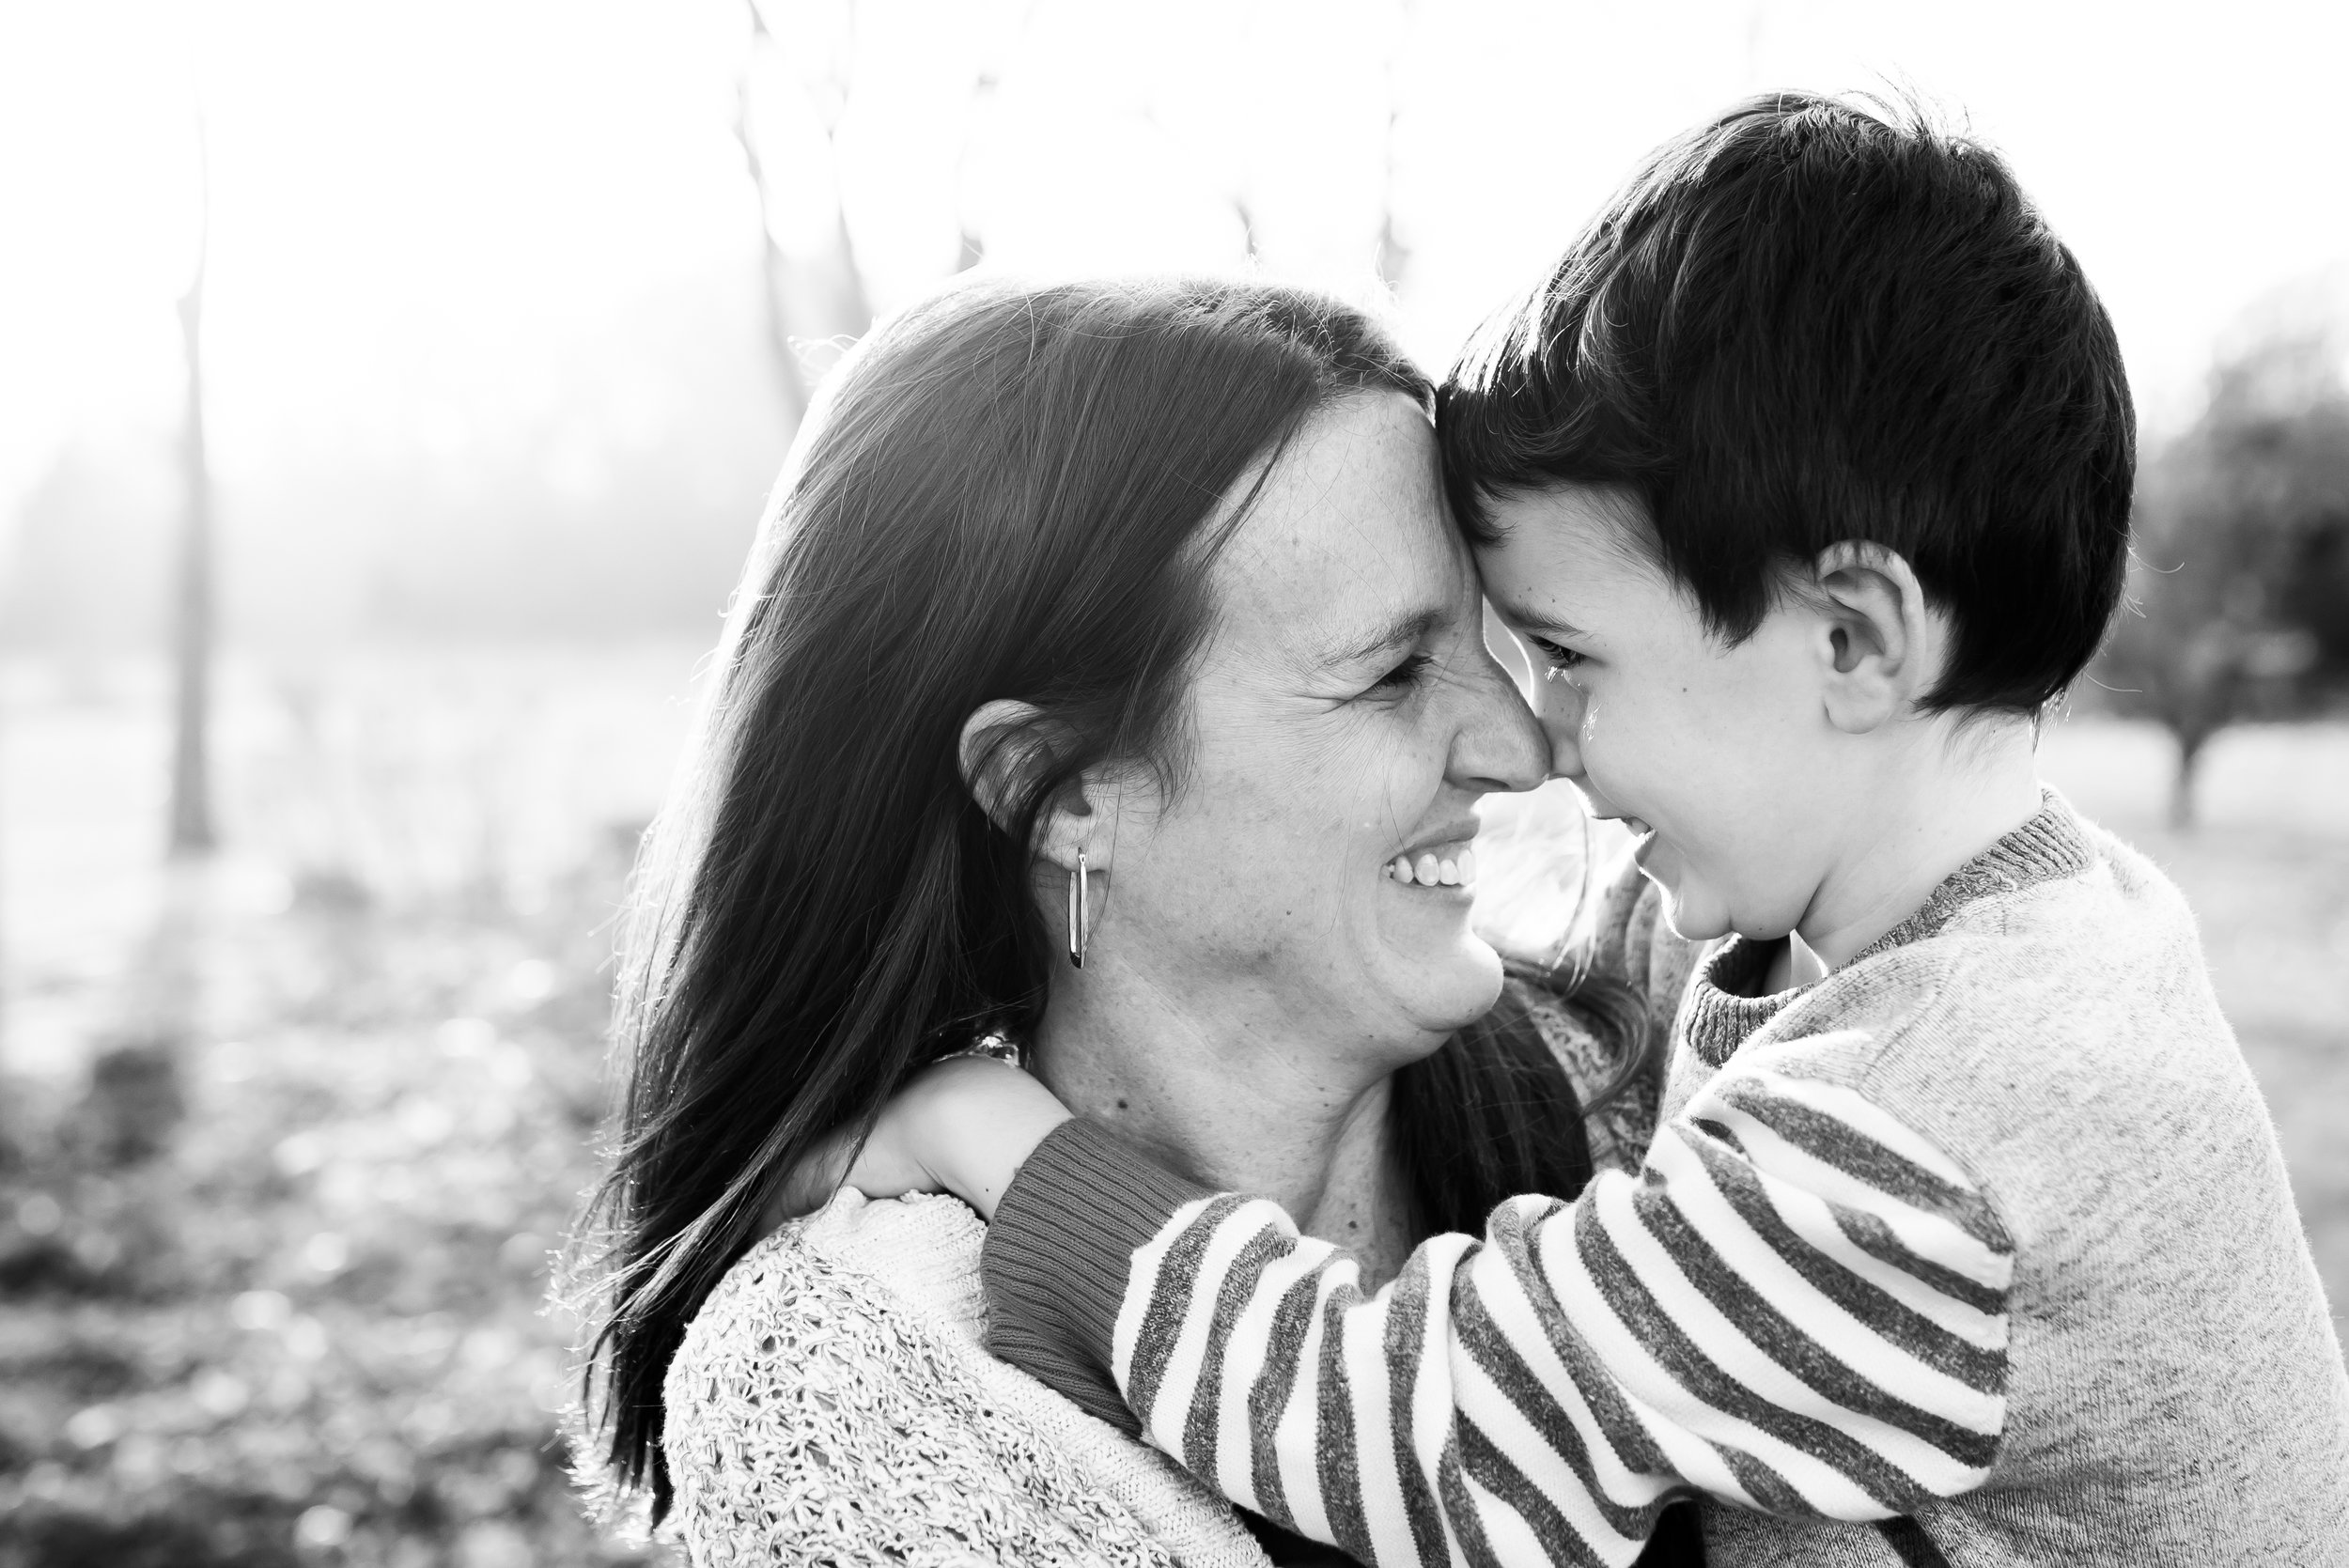 This kiddo wanted to get a picture with mom first. :) He's definitely a mama's boy!